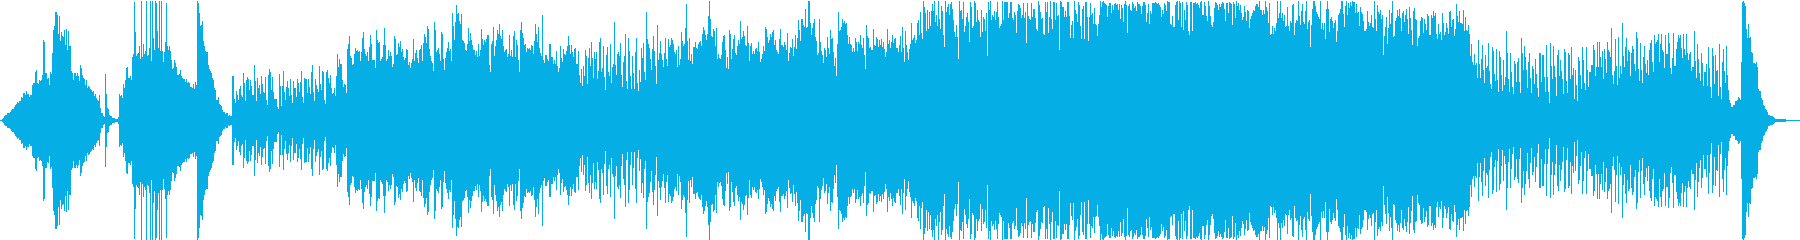 Festival and old-fashioned Japanese BGM's reproduced waveform